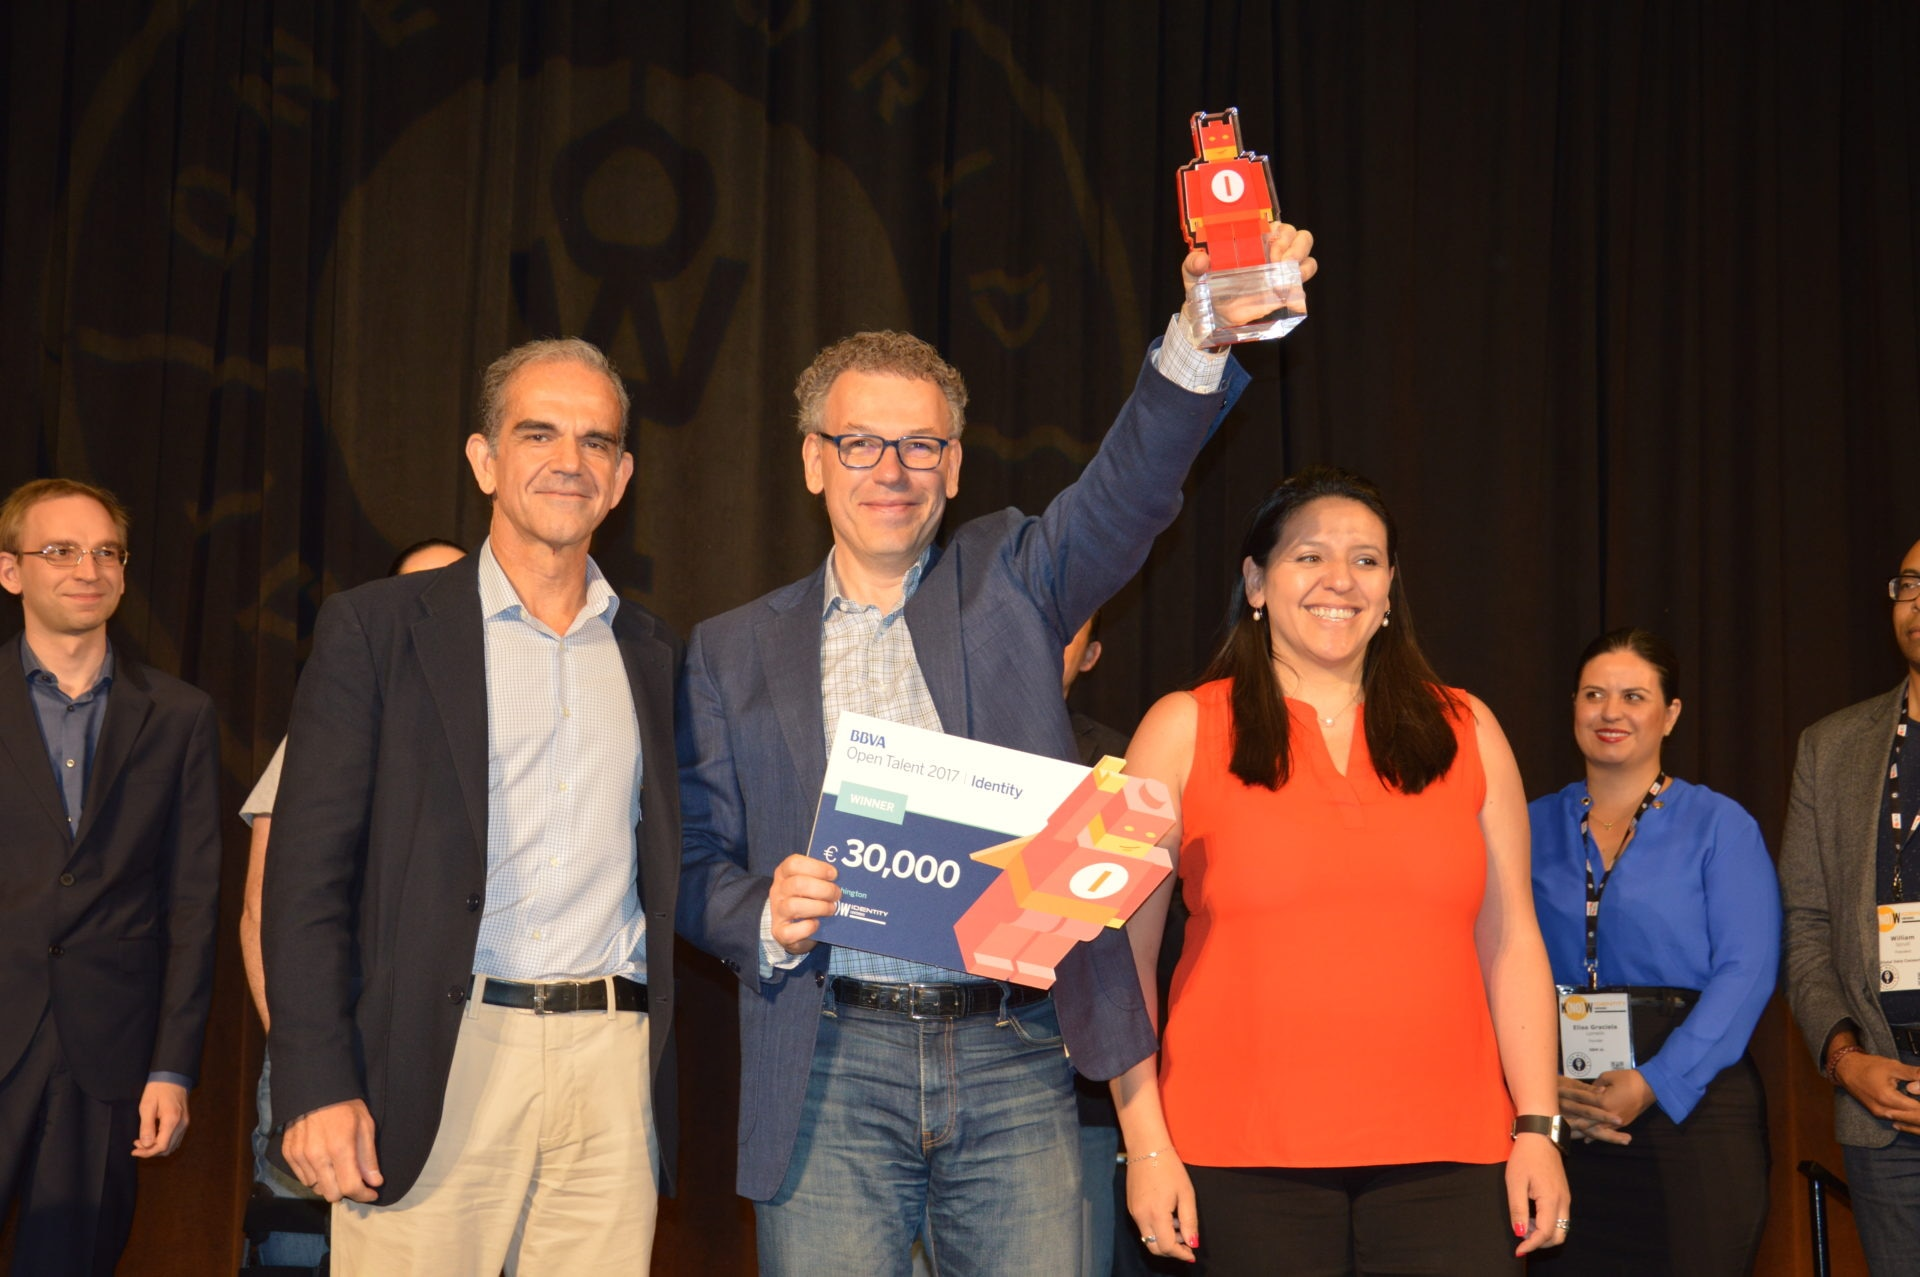 BBVA named its first winner for 2017 Open Talent competitions, SnapSwap.